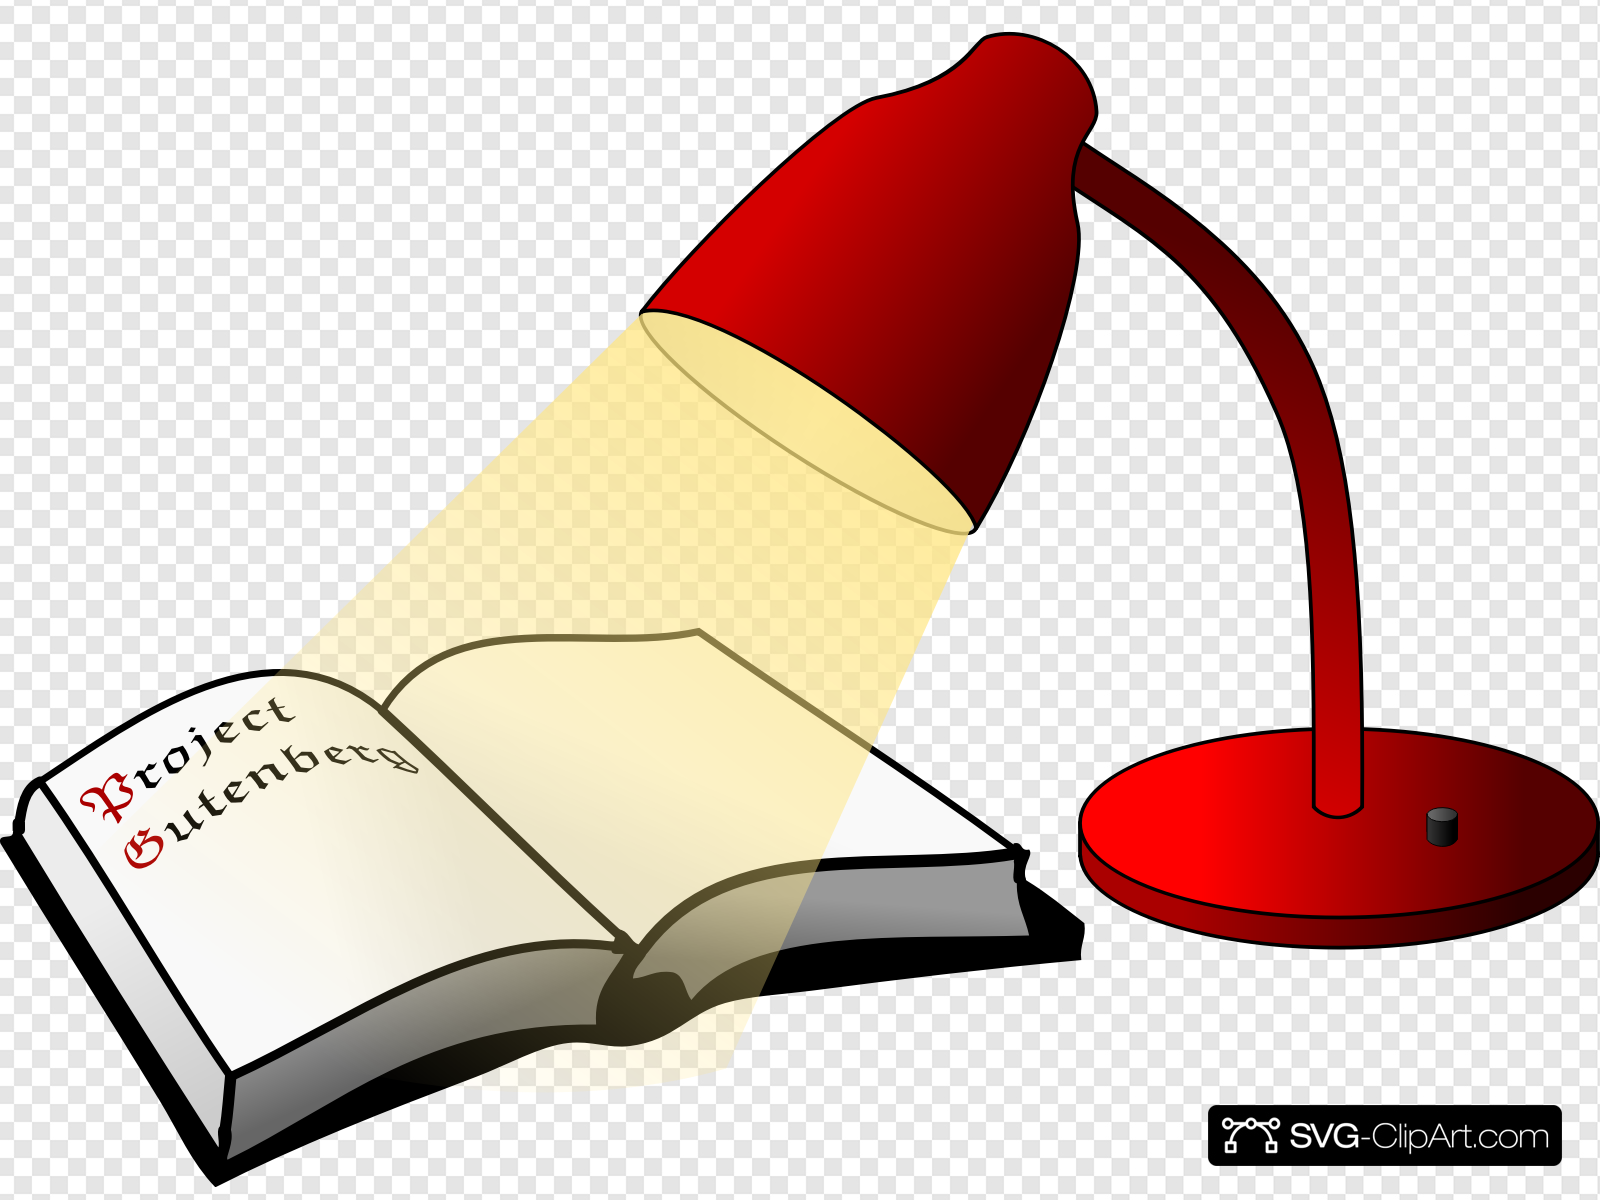 Bera clipart jpg transparent library Book And Lamp Clip art, Icon and SVG - SVG Clipart jpg transparent library